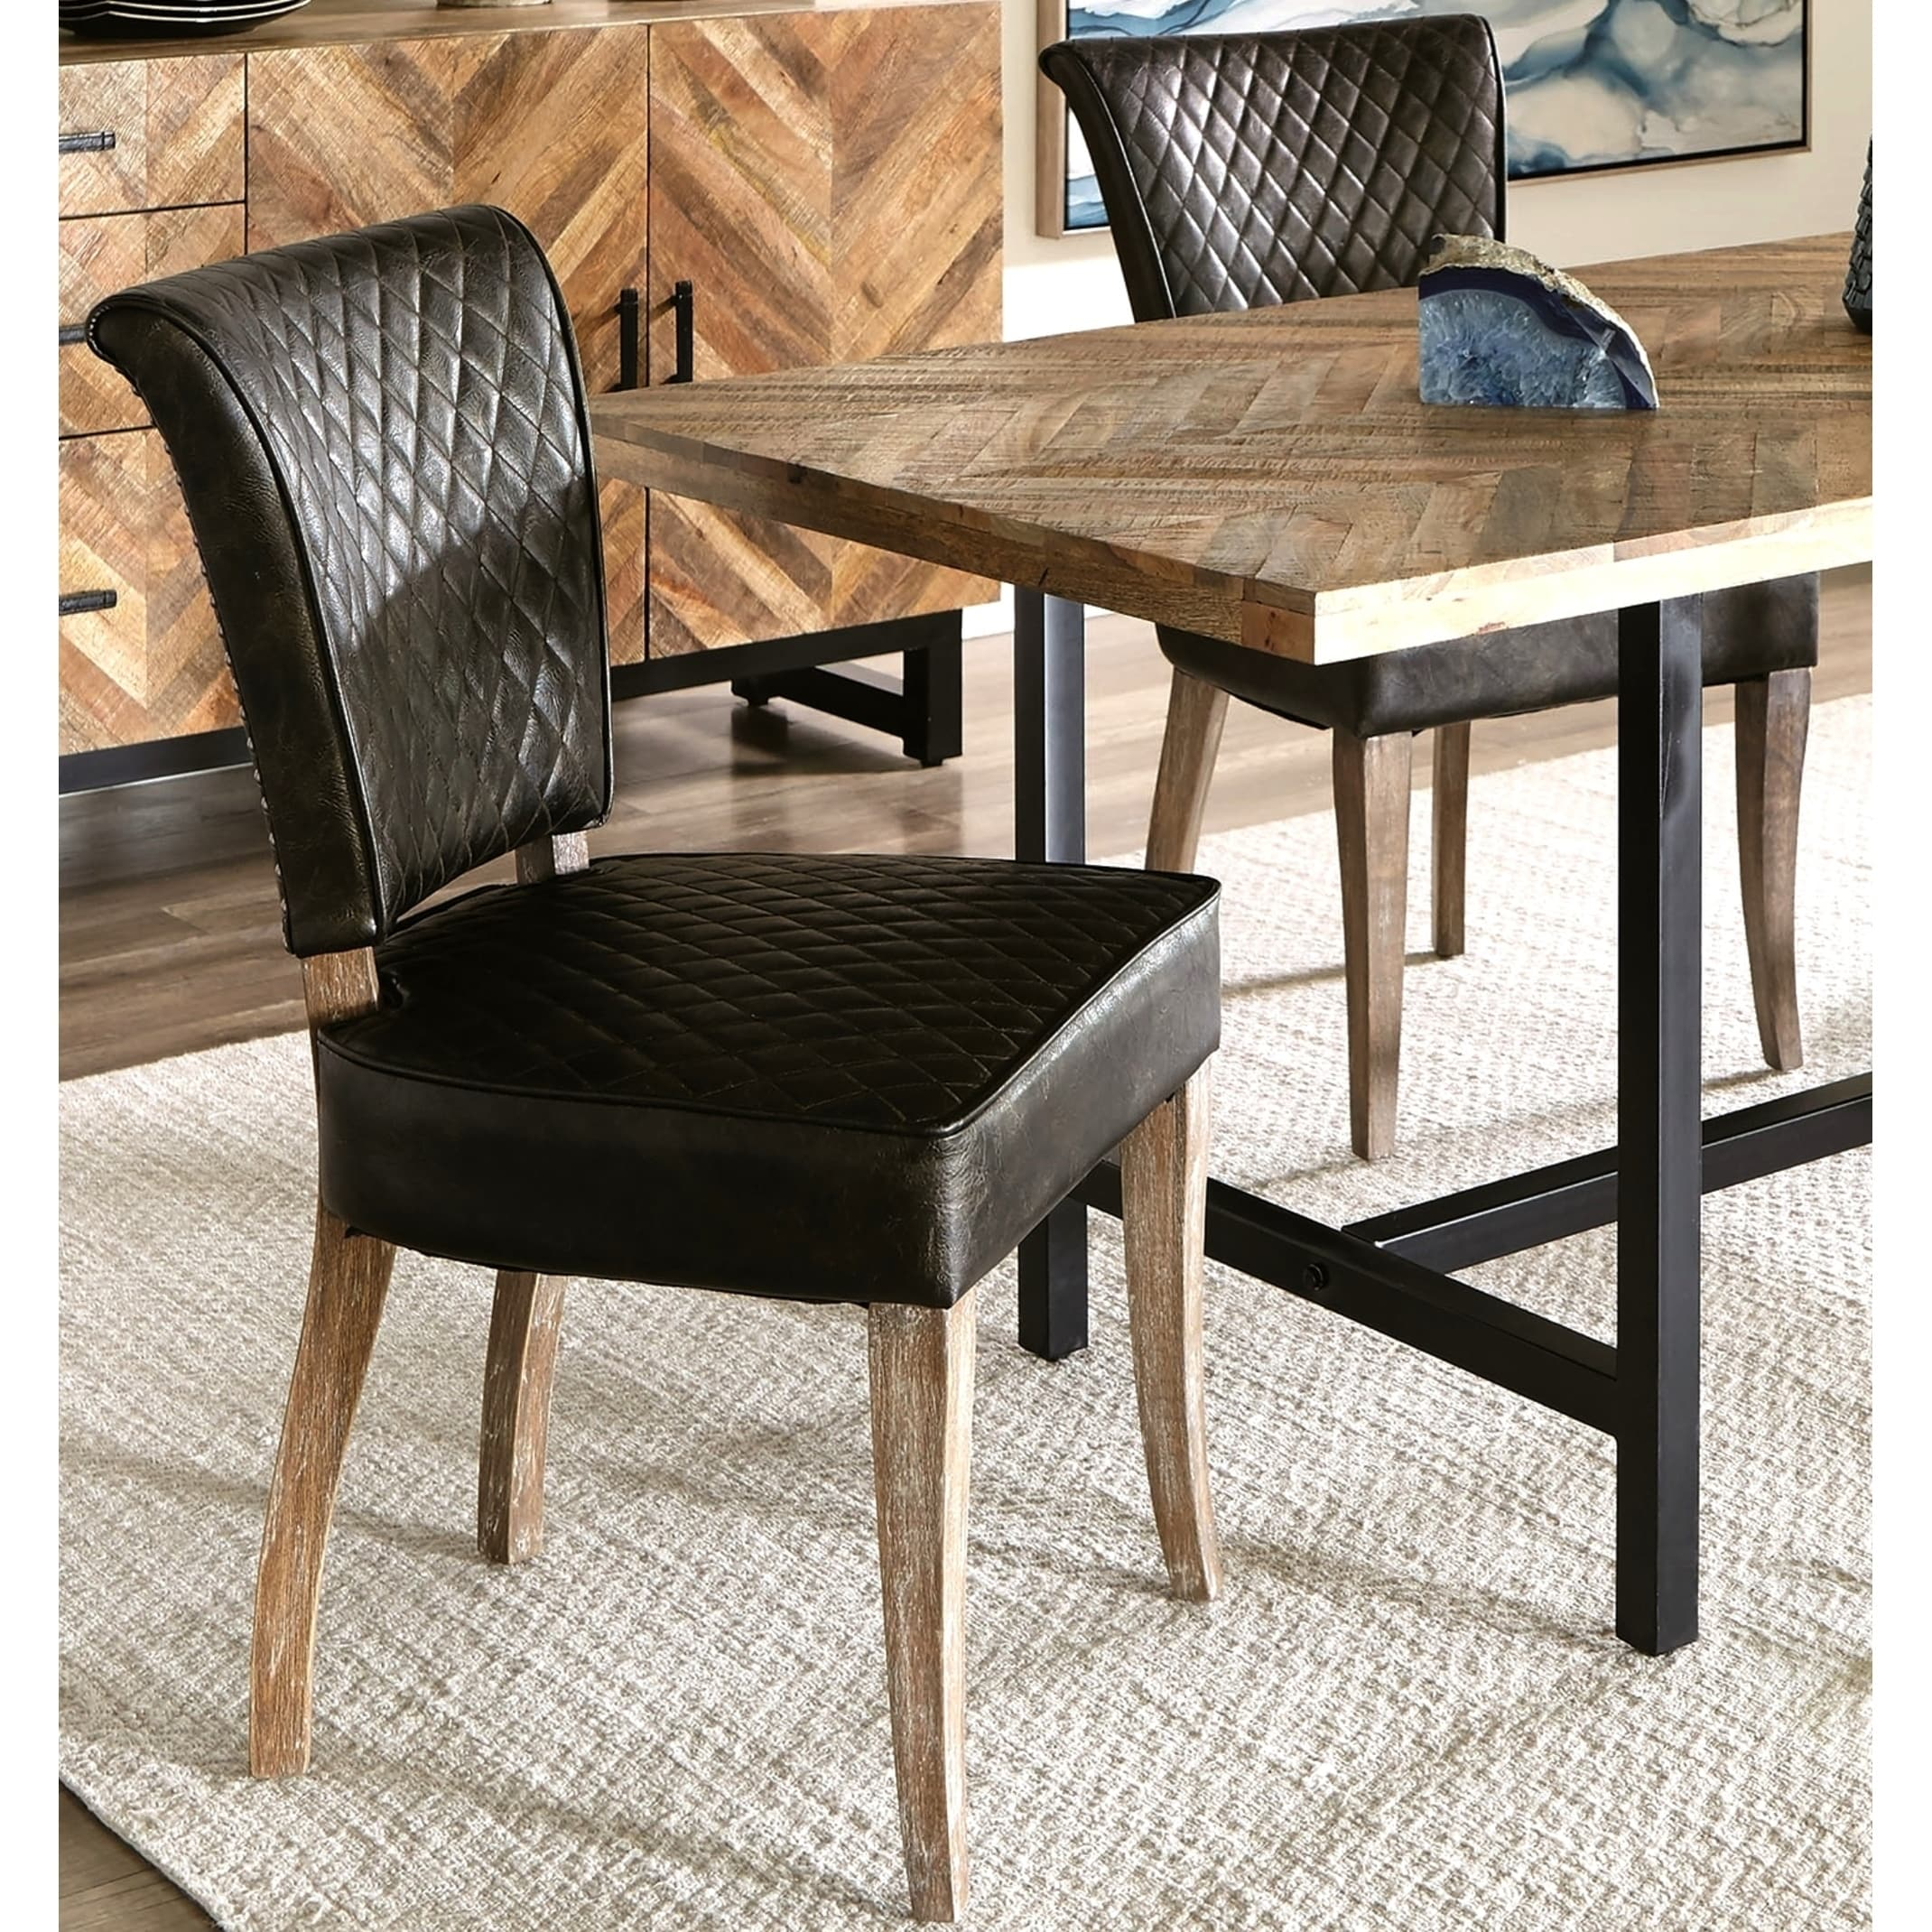 Quilt Design Rustic Upholstered Dining Chairs With Nail Head Trim Set Of 2